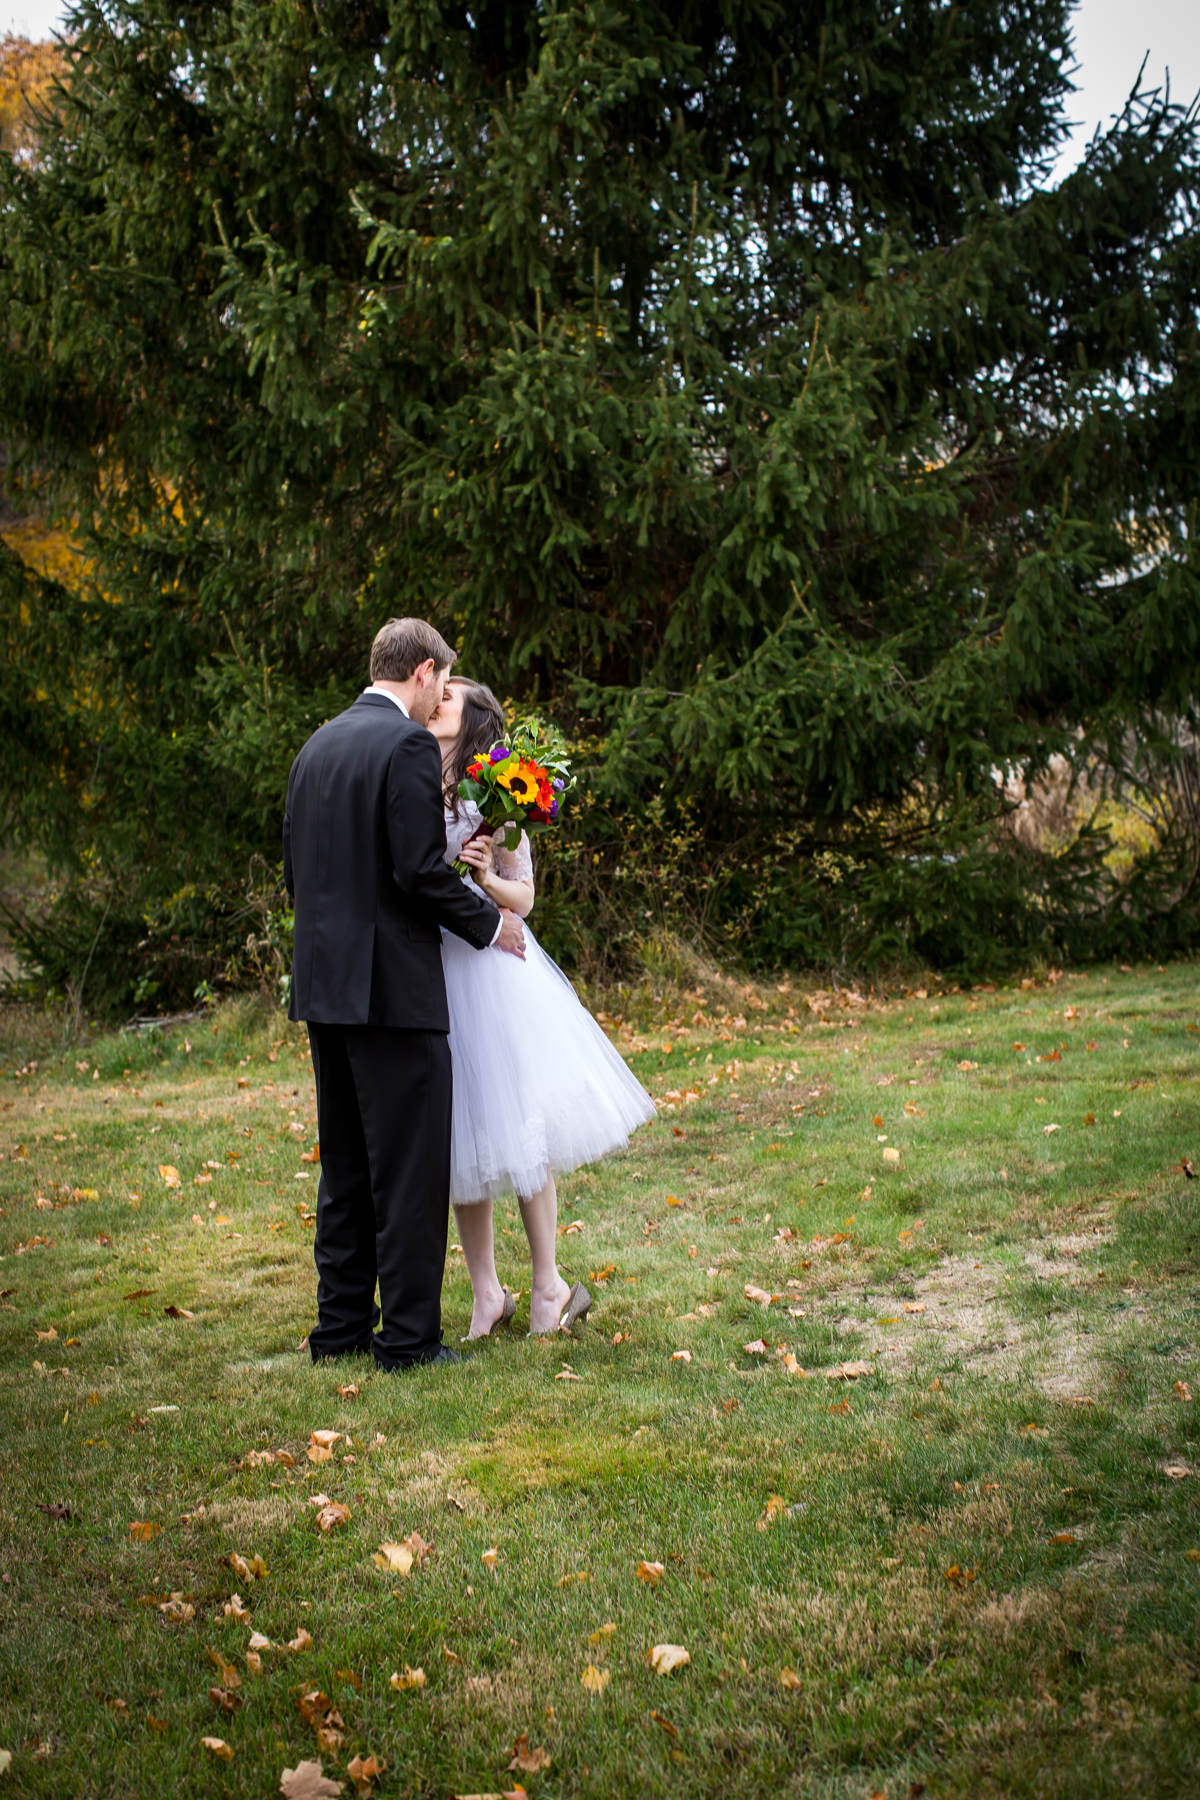 Gary Young Photograpy| pierce-house-wedding-mcinerney-23.jpg